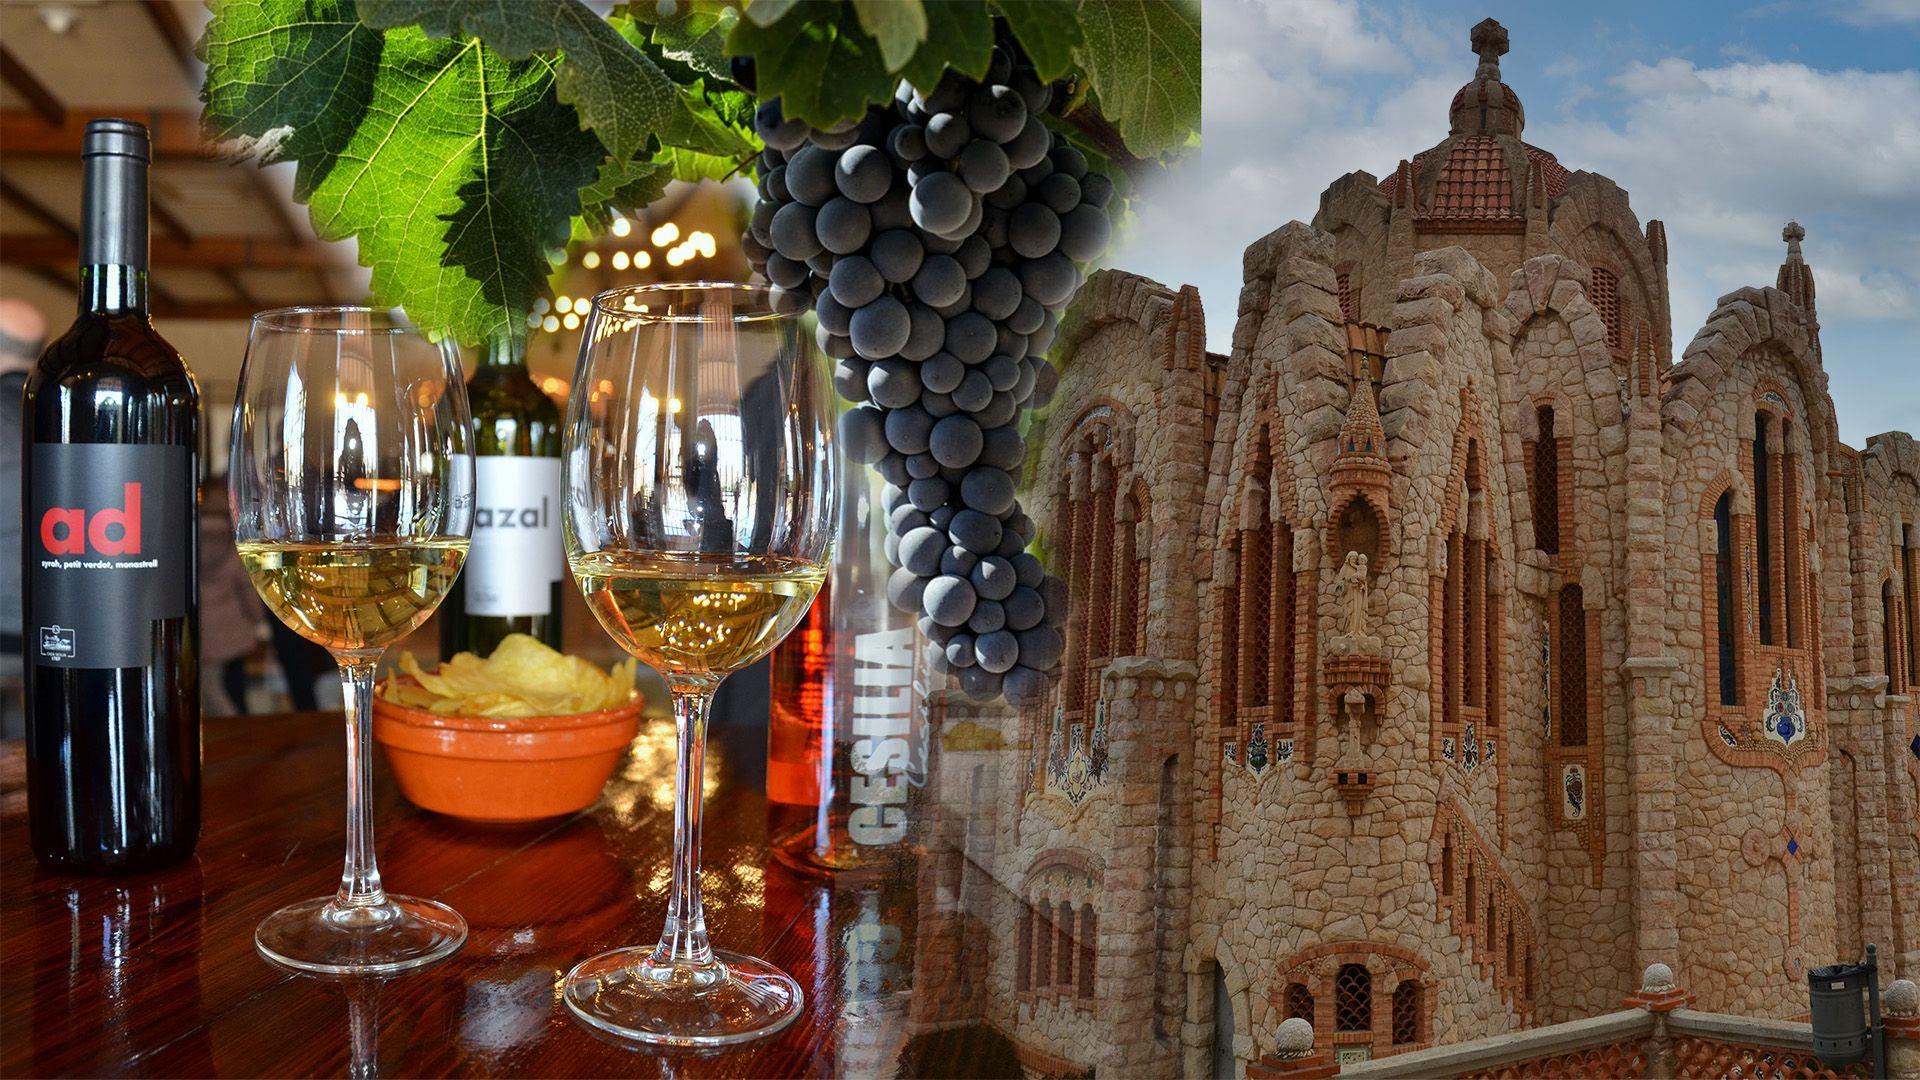 Guided Tour Alicante - Novelda wine and culture